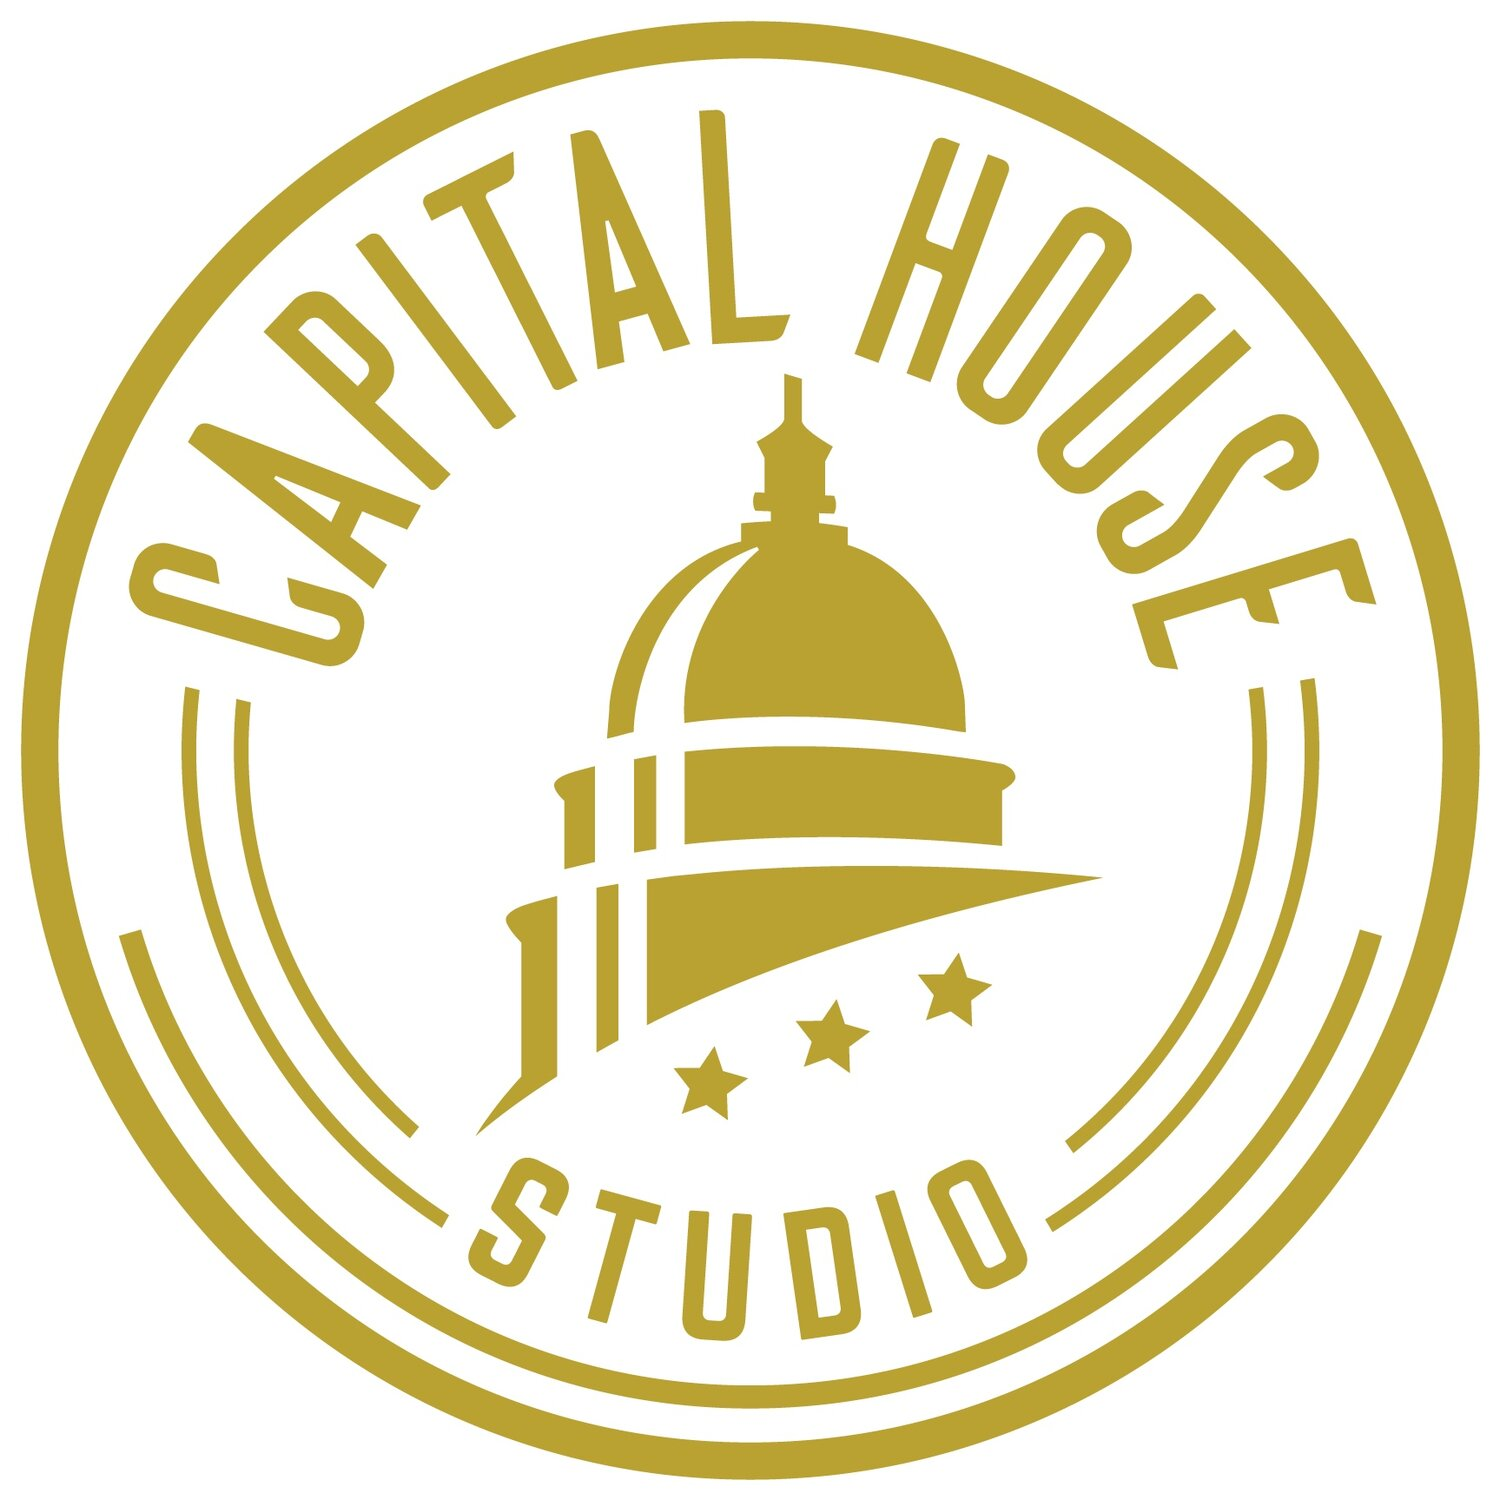 CAPITAL HOUSE STUDIO